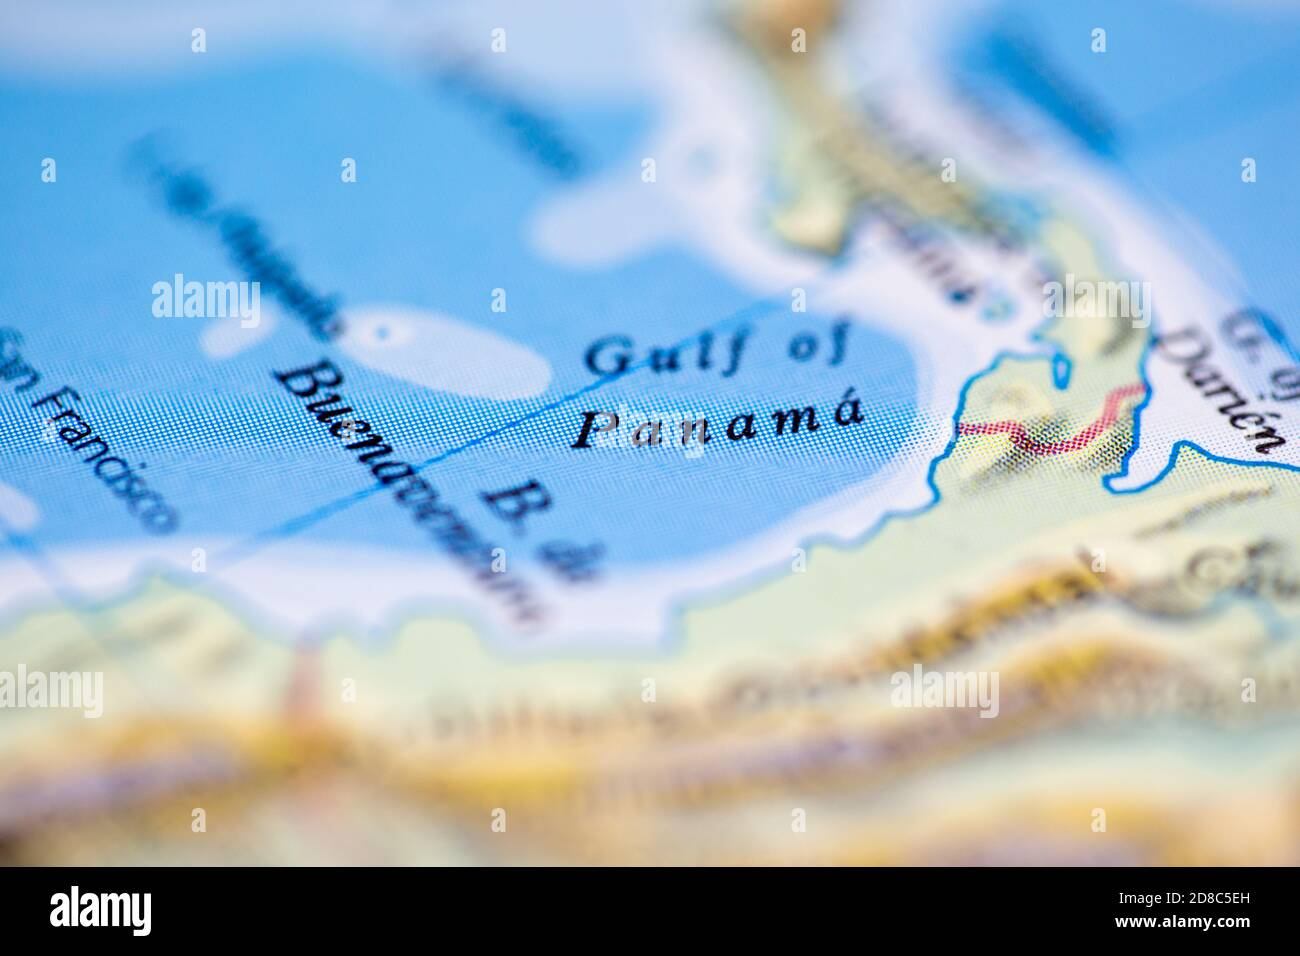 Picture of: Shallow Depth Of Field Focus On Geographical Map Location Of Gulf Of Panama Off Coast Of Panama On Atlas Stock Photo Alamy